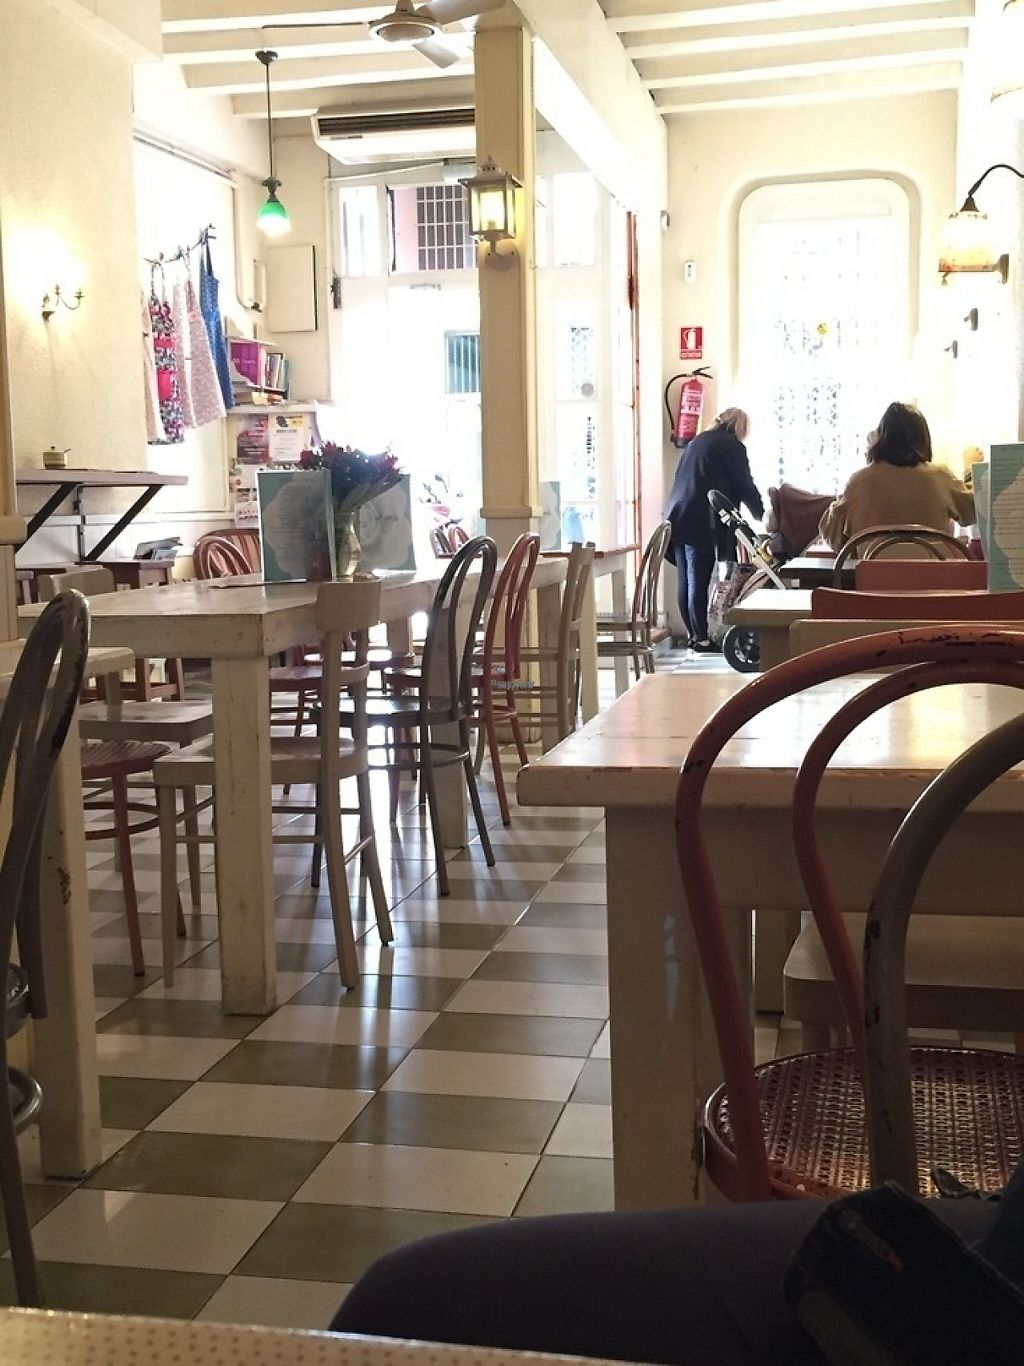 """Photo of Cafe Camelia  by <a href=""""/members/profile/Serenella"""">Serenella</a> <br/>Inside <br/> April 18, 2017  - <a href='/contact/abuse/image/34450/249595'>Report</a>"""